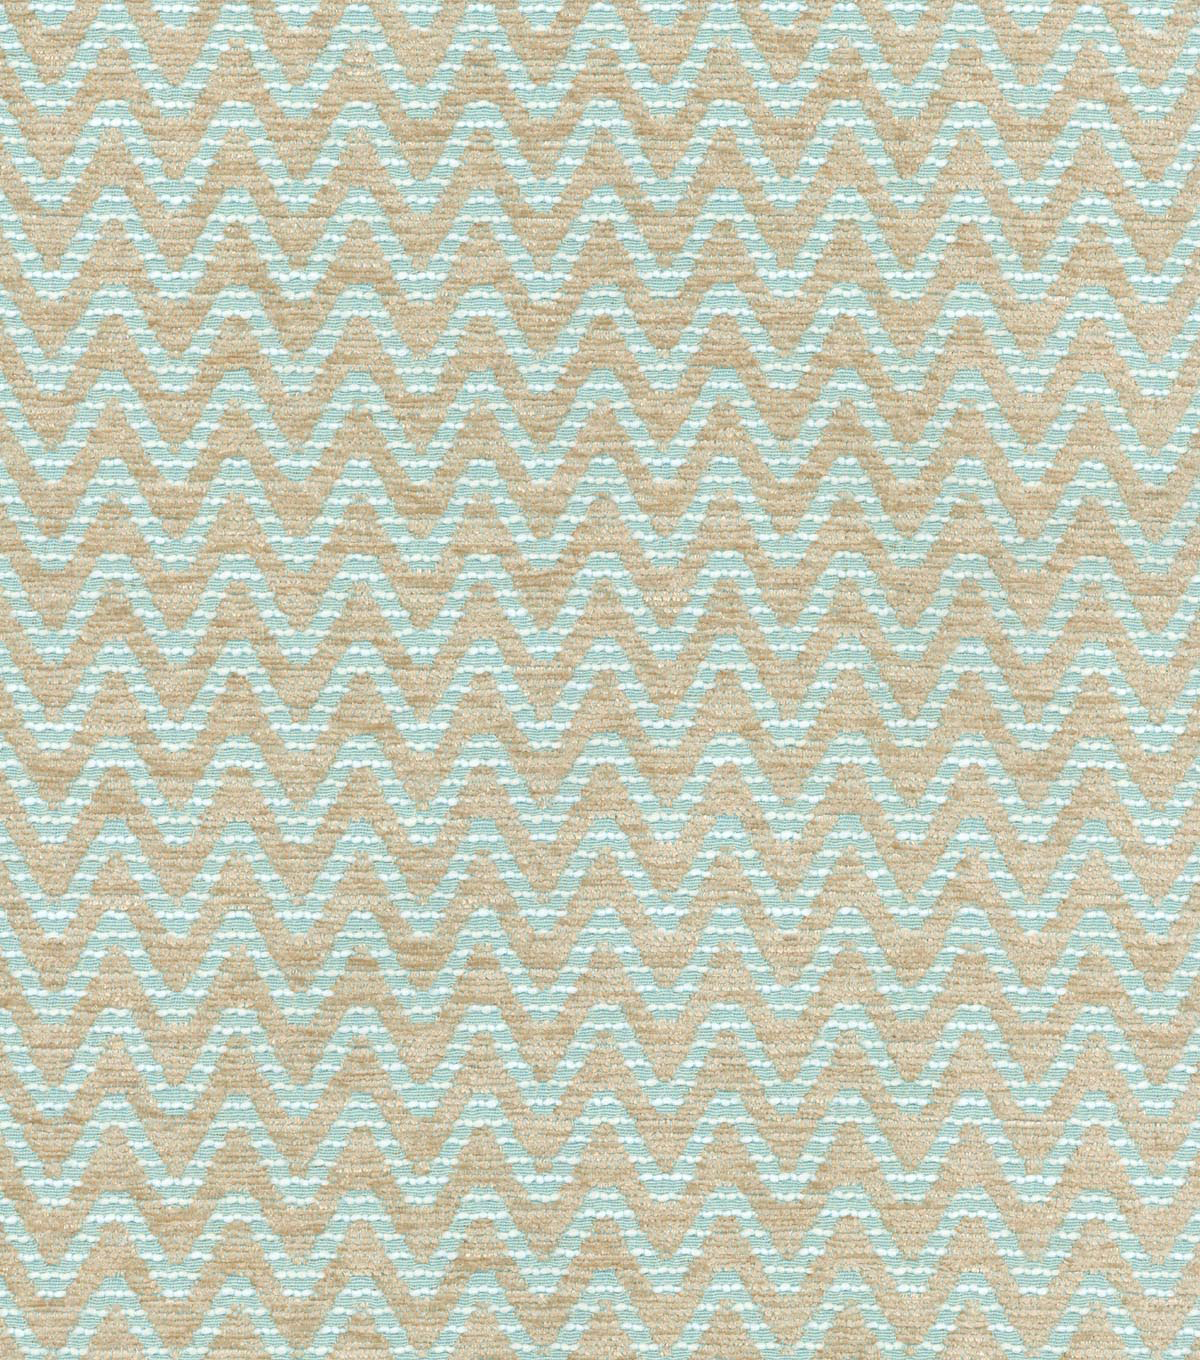 Home Decor 8\u0022x8\u0022 Swatch Fabric-Waverly Wave of Affection Opal